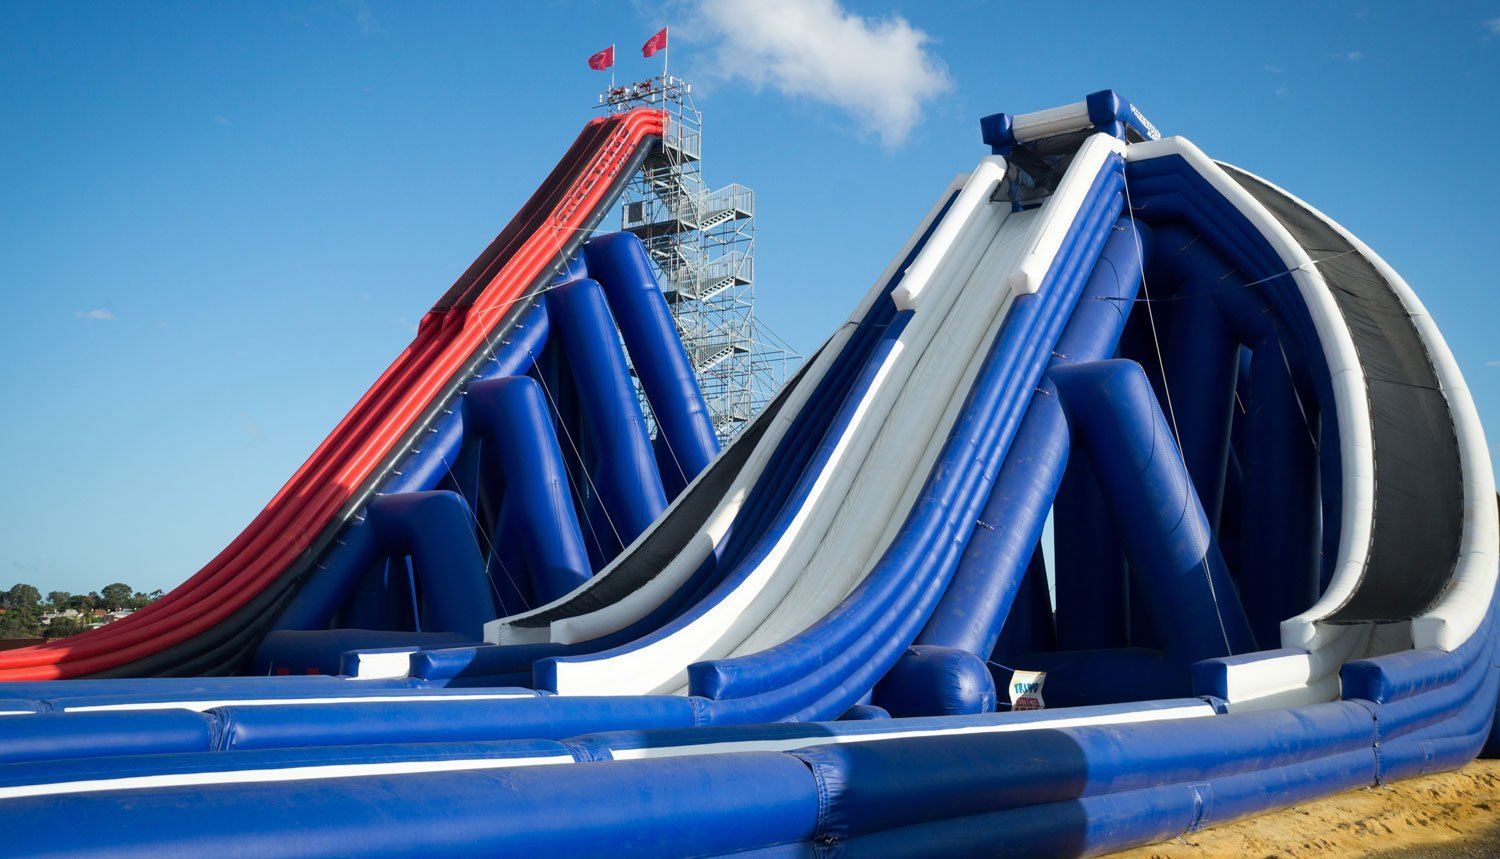 FreeStyle Slides Offers World's Tallest Inflatable Water Slide